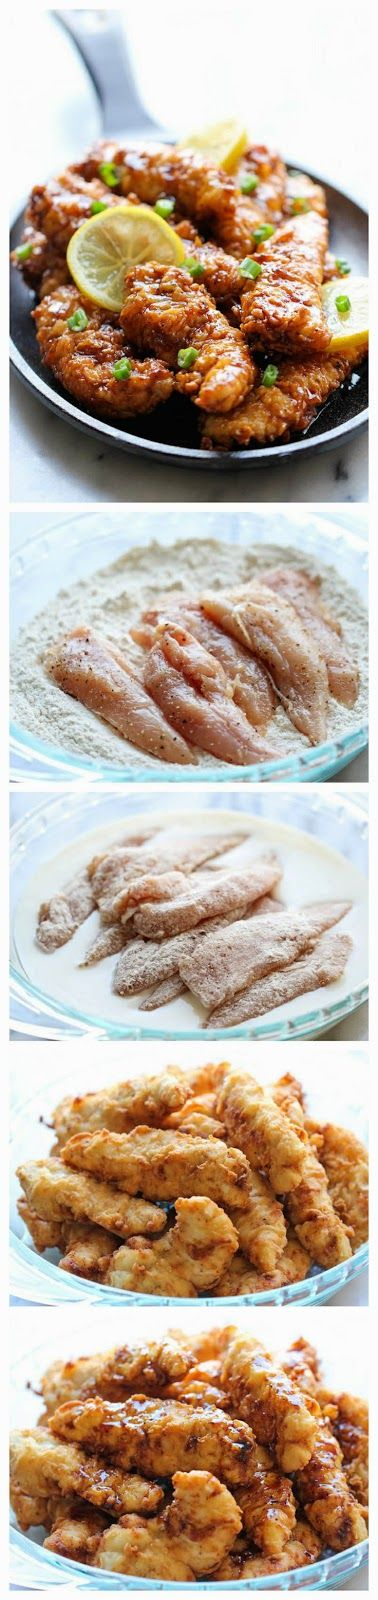 Asian Lemon Chicken Tenders | Recepies | Pinterest